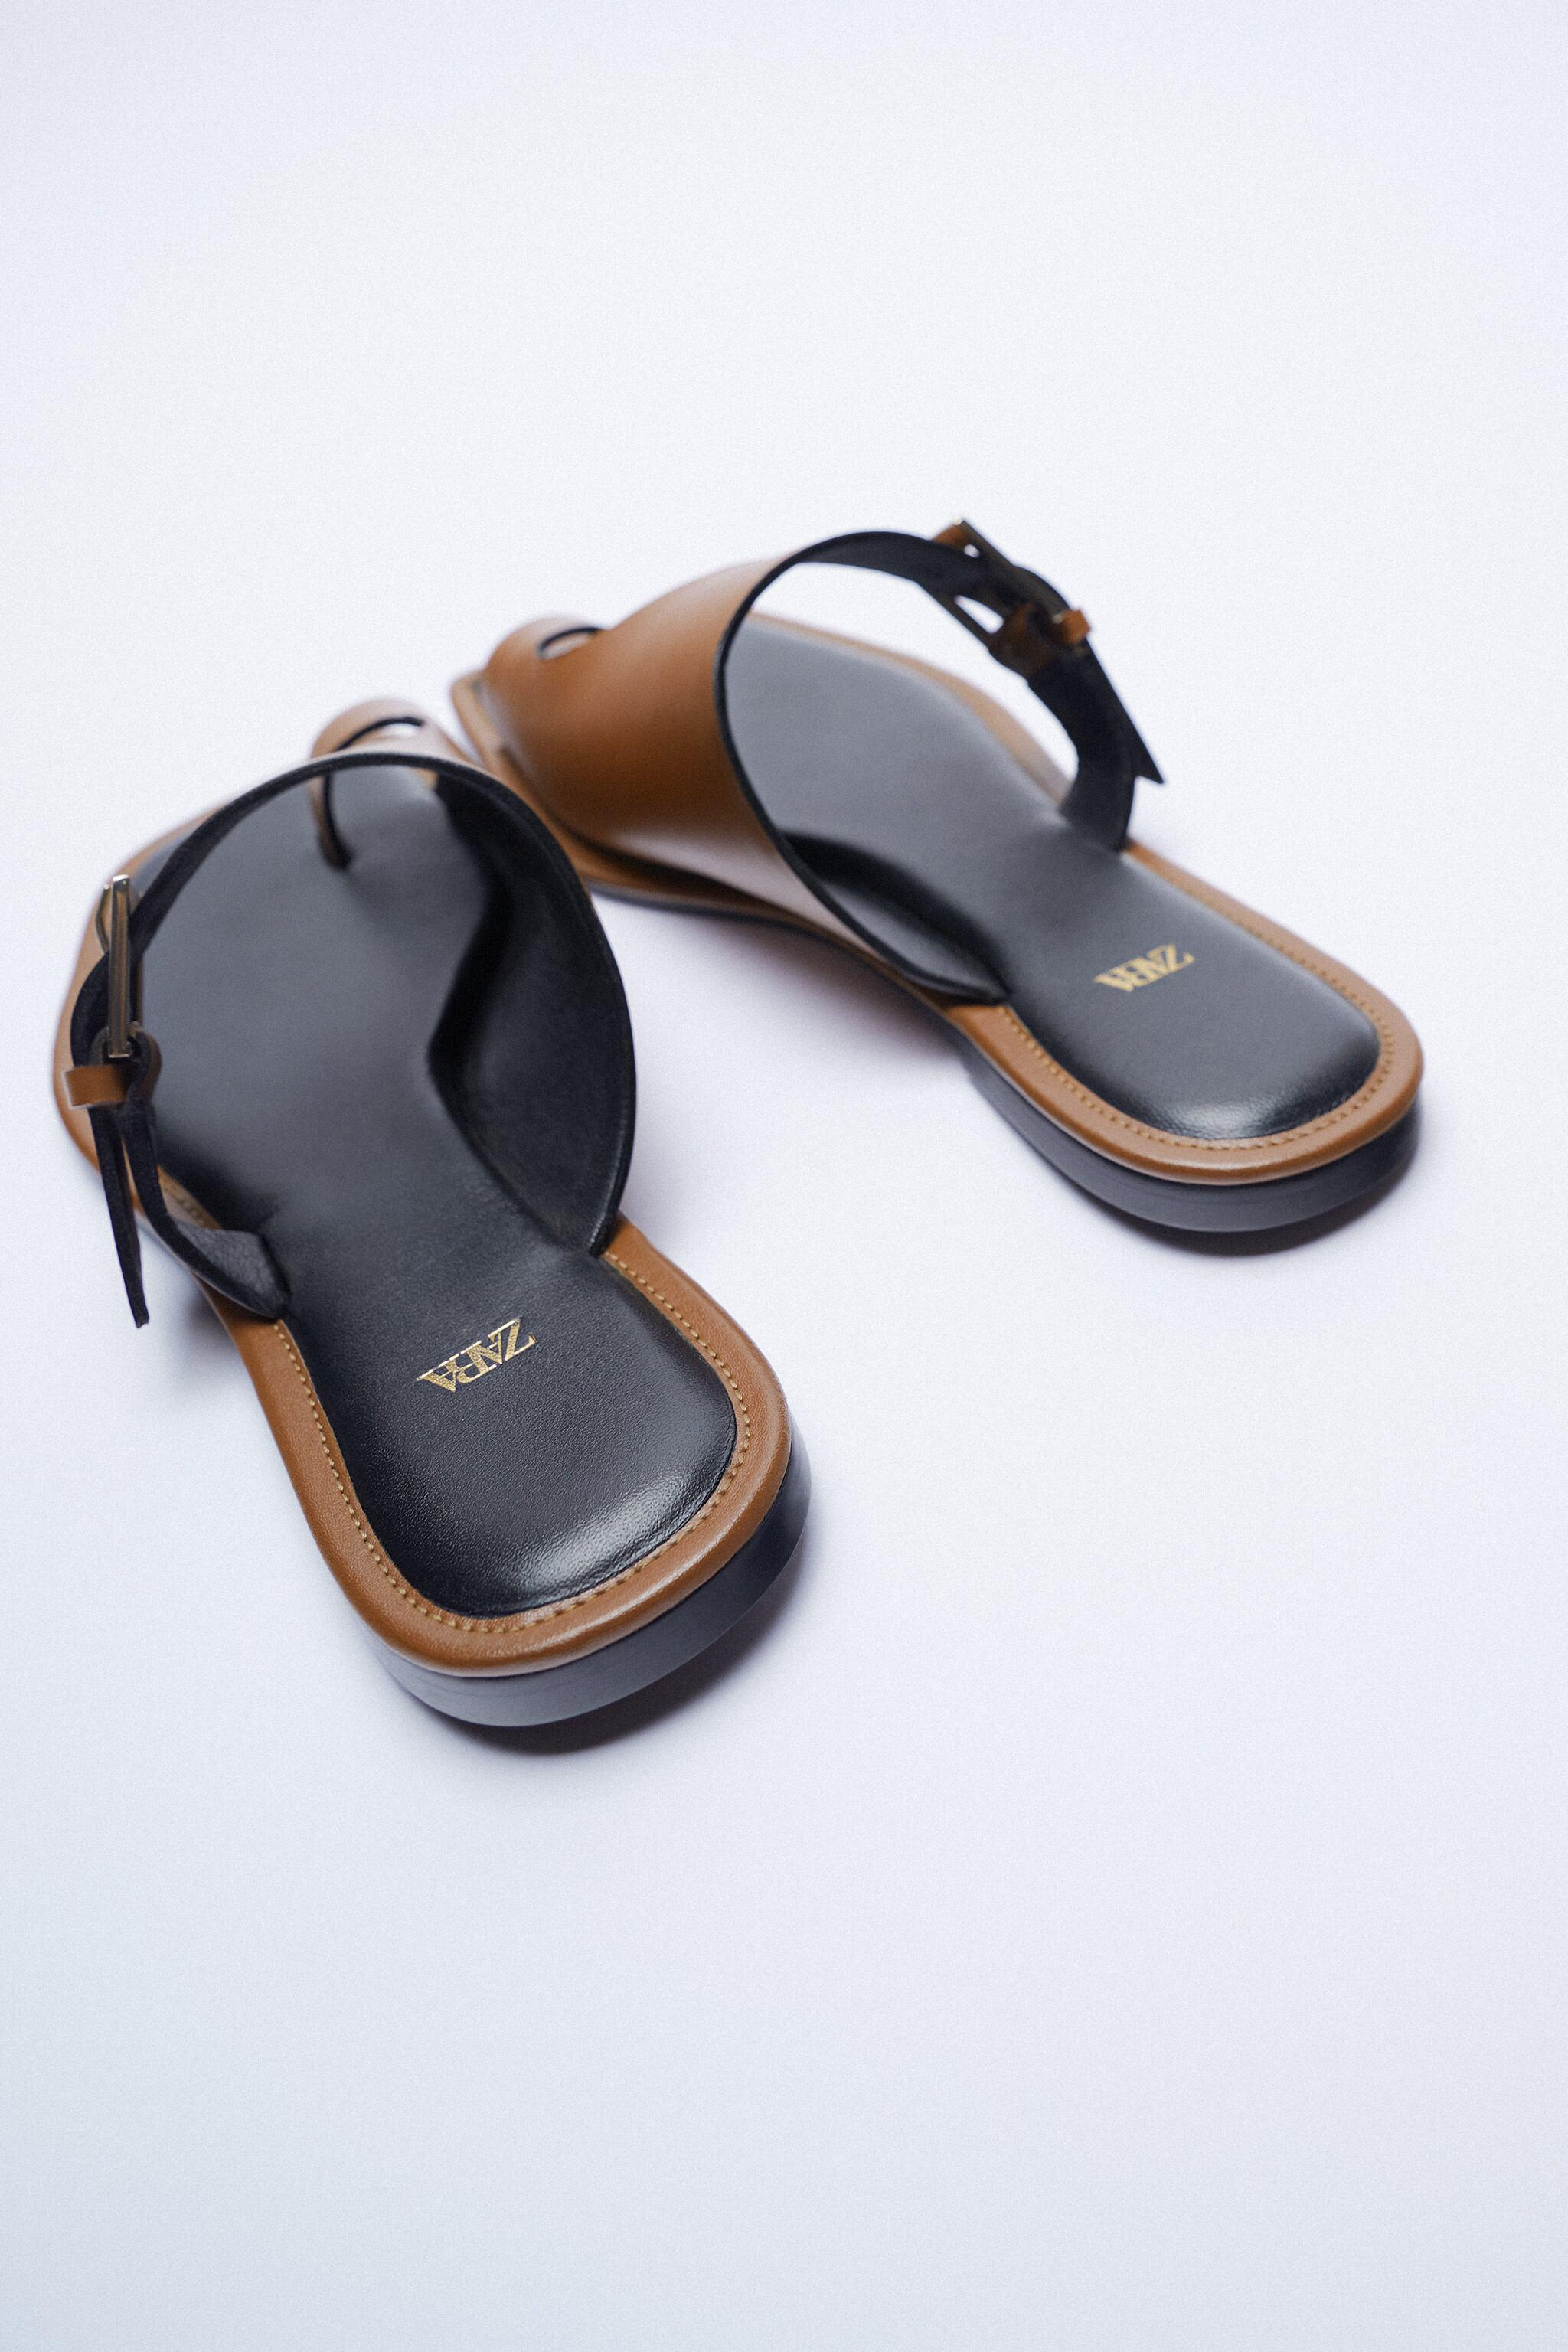 ASYMMETRICAL LEATHER SLIDE SANDALS WITH BUCKLE 9